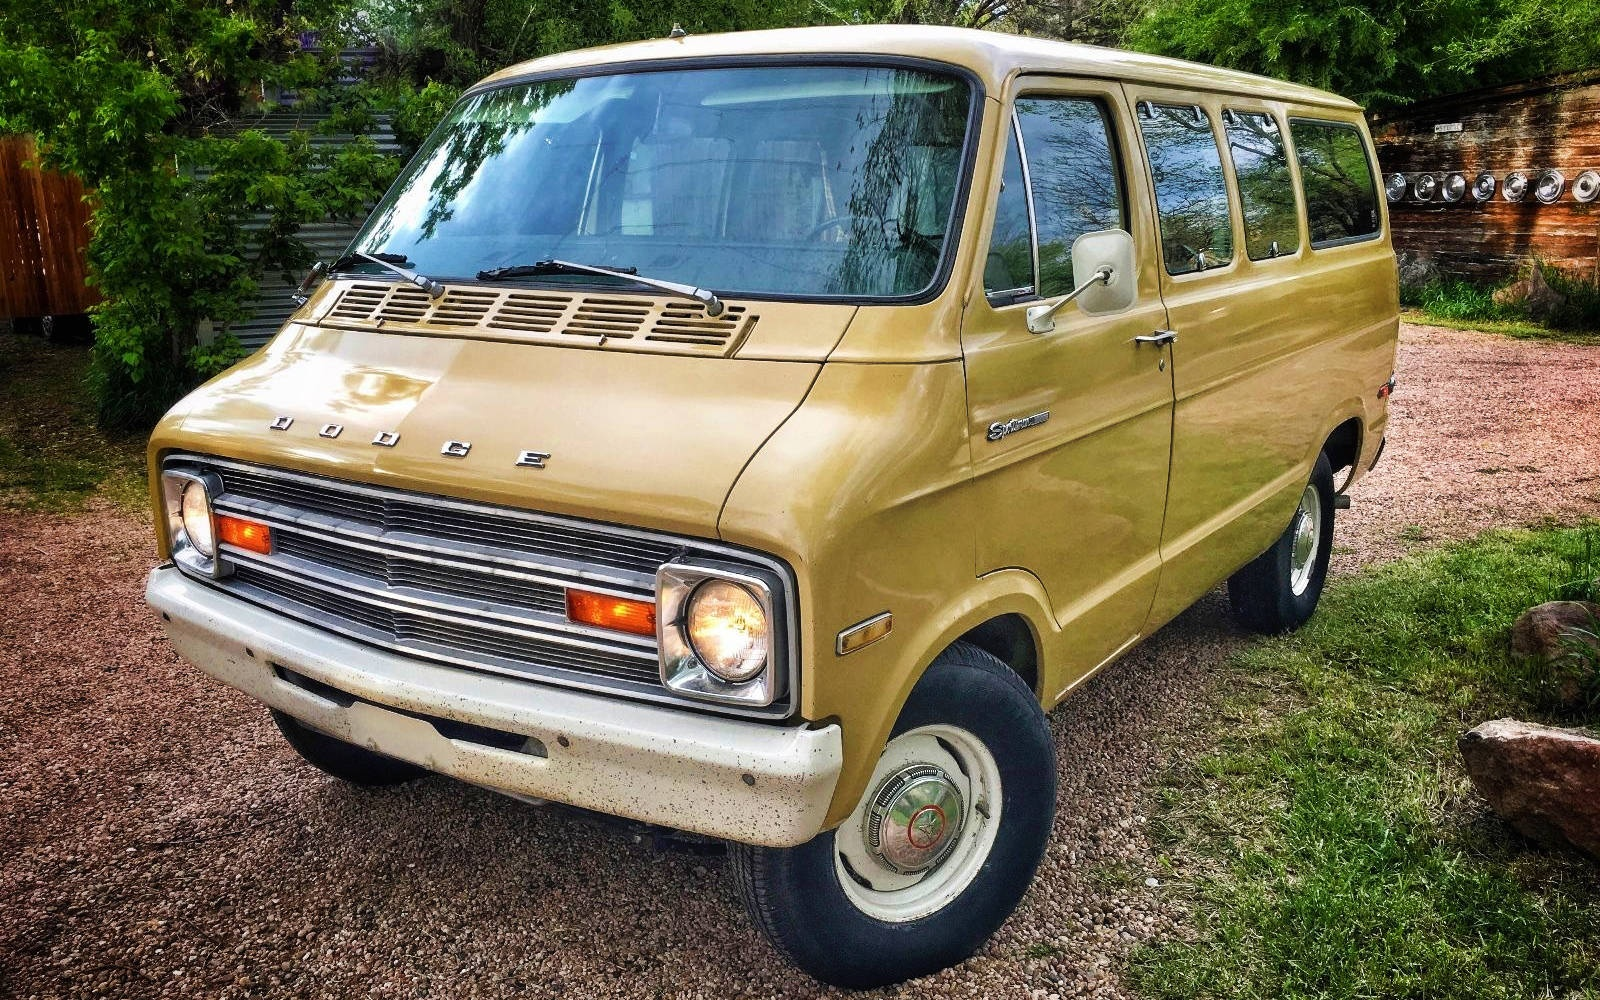 wild shag carpet 1974 dodge sportsman van. Black Bedroom Furniture Sets. Home Design Ideas